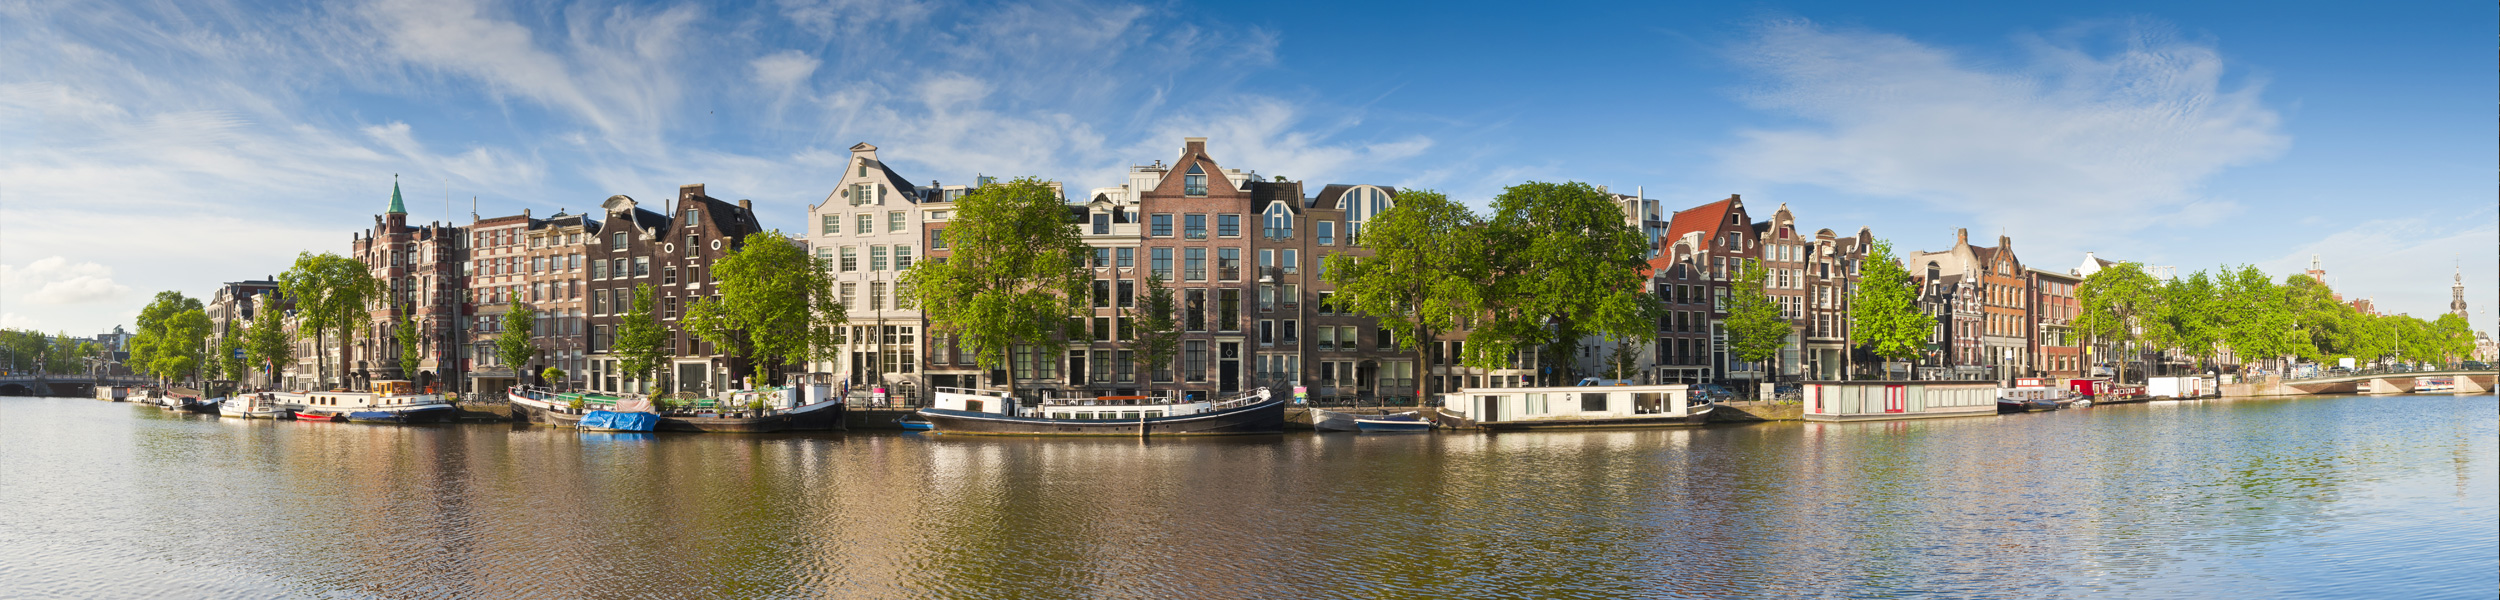 Software Product Manager Amsterdam, The Netherlands